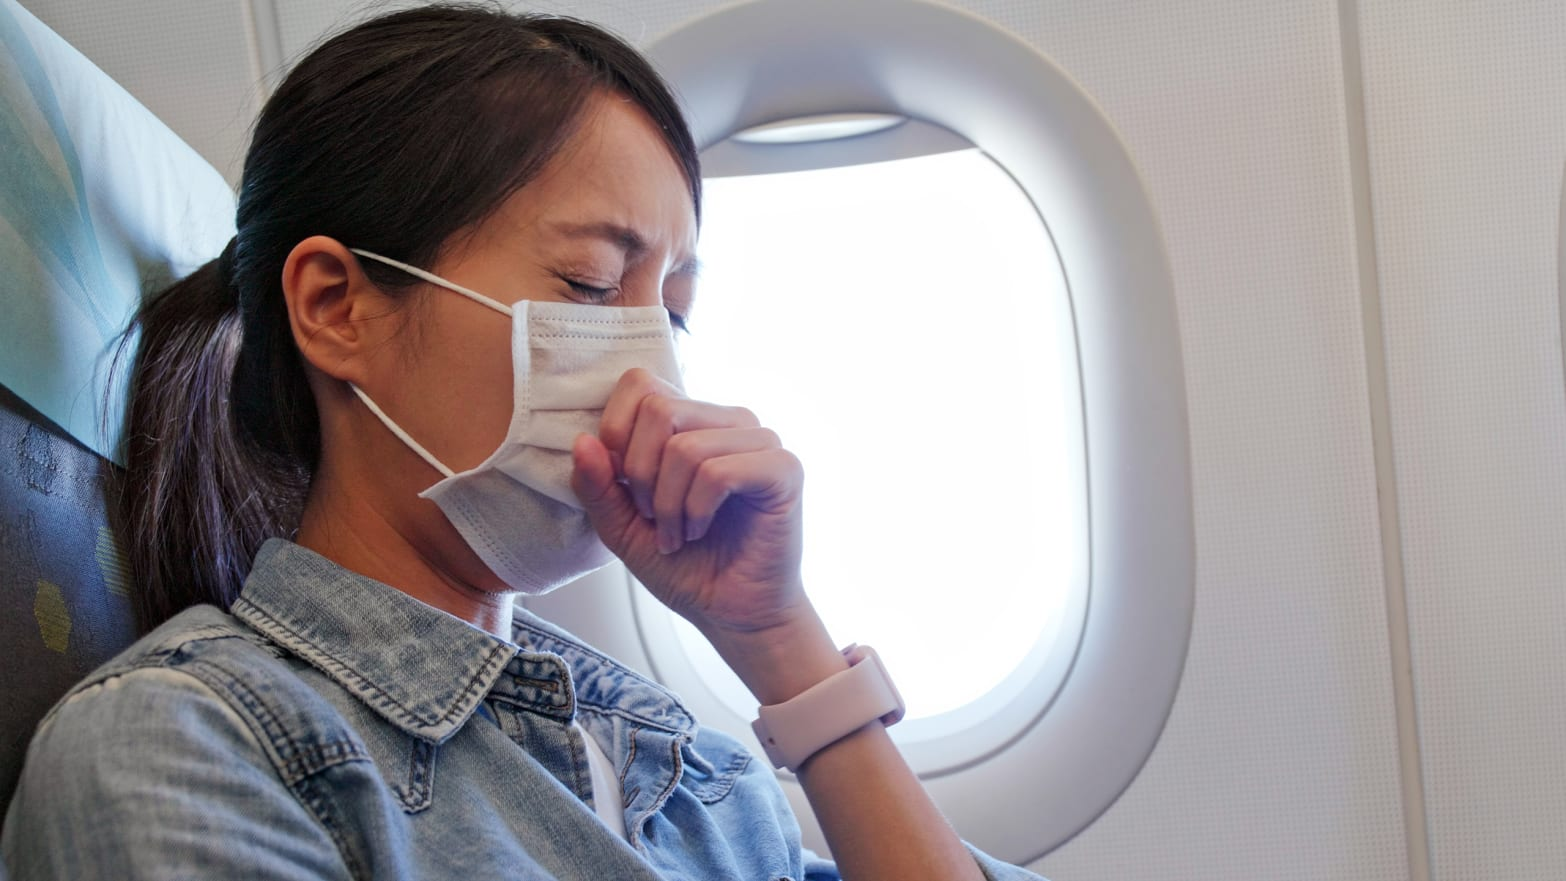 photo of woman sneezing with mask on face airplane thanksgiving will i get sick flu influenza shot vaccine flight holiday travel immunity immune system robin thompson